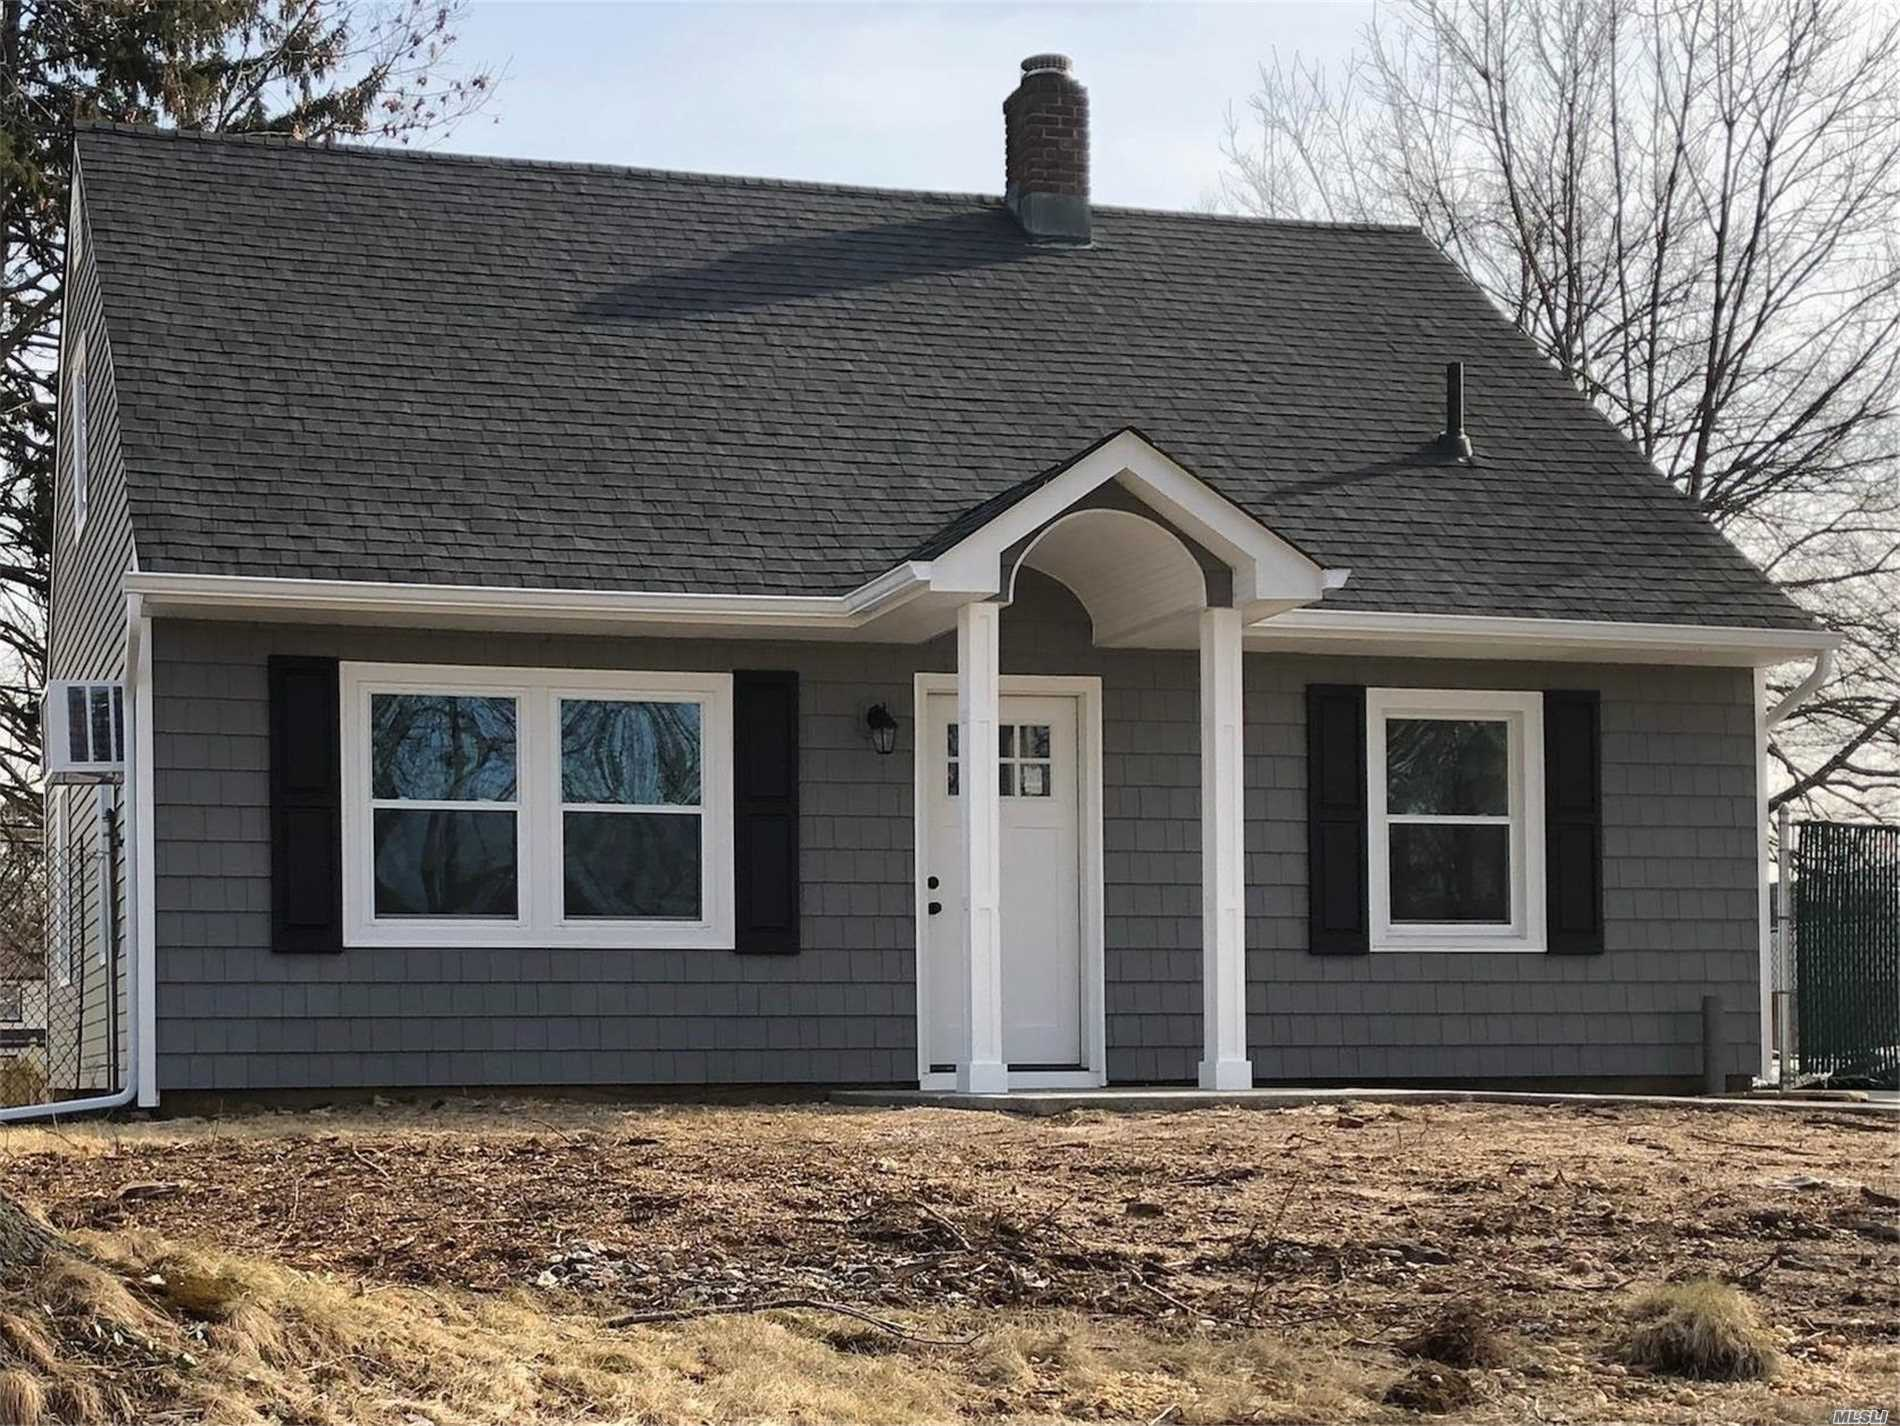 This Charming 4 Bedroom Cape Has Been Completely Renovated!!! Brand New Granite Kitchen With Stainless Steel Appliances And Brand New Full Bathroom. New Siding, Roof, Gutters, Boiler, Carpet, Tile Floors And High Hats Through Out. Just Unpack Your Bags And Move Right In!!! Taxes Have Been Grieved.